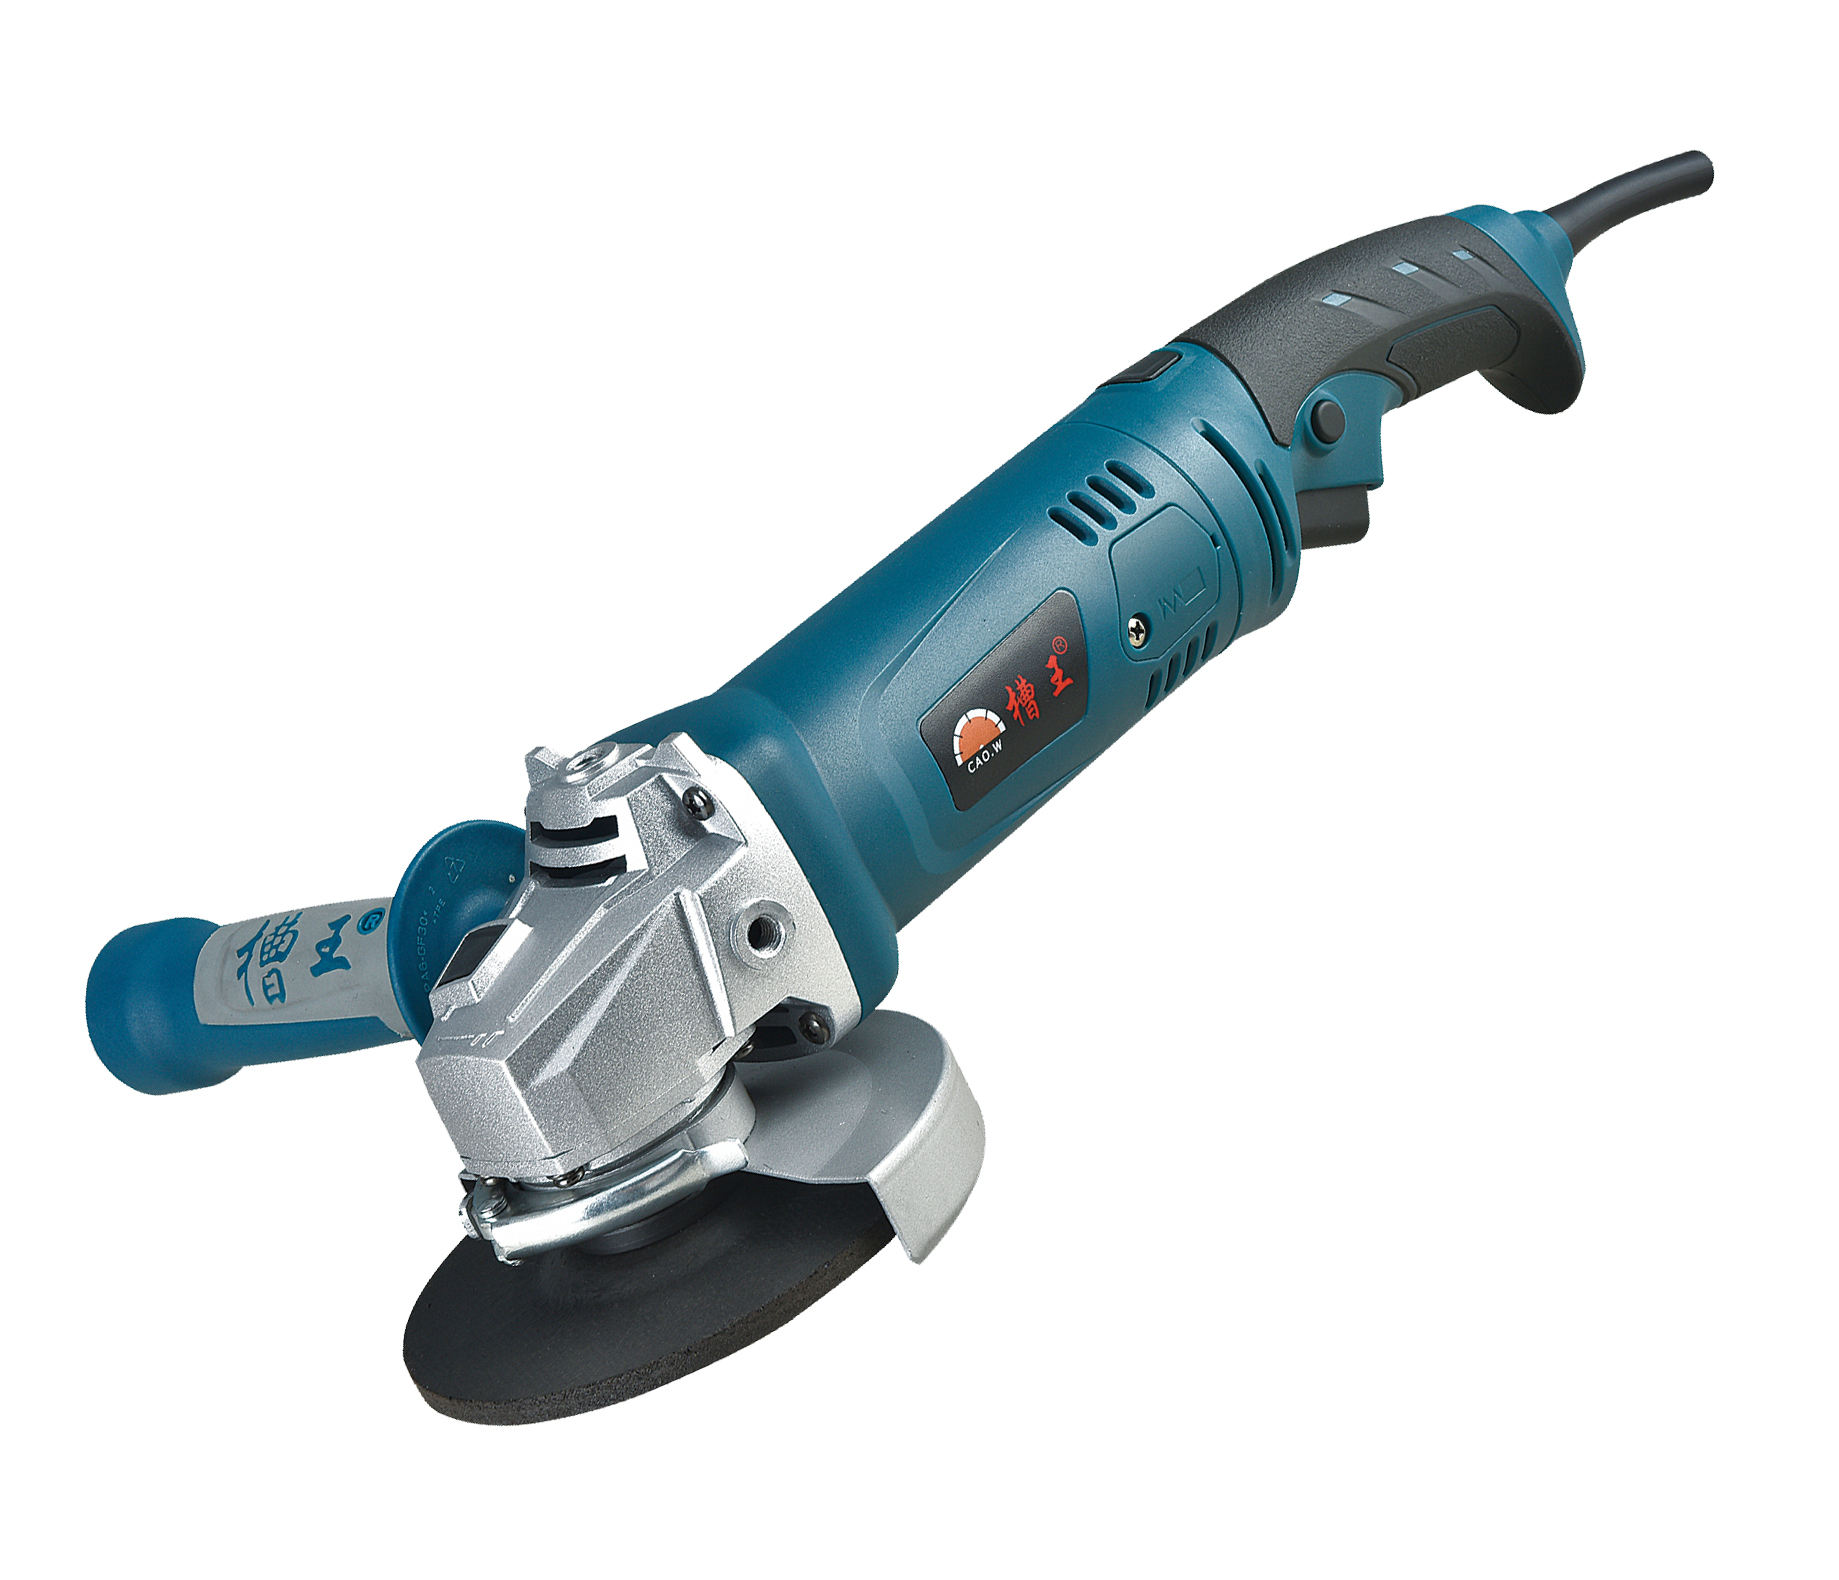 Harbor Freight 1200w 125mm Battery Powered Variable Speed Best Small Portable Cordless Angle Grinder